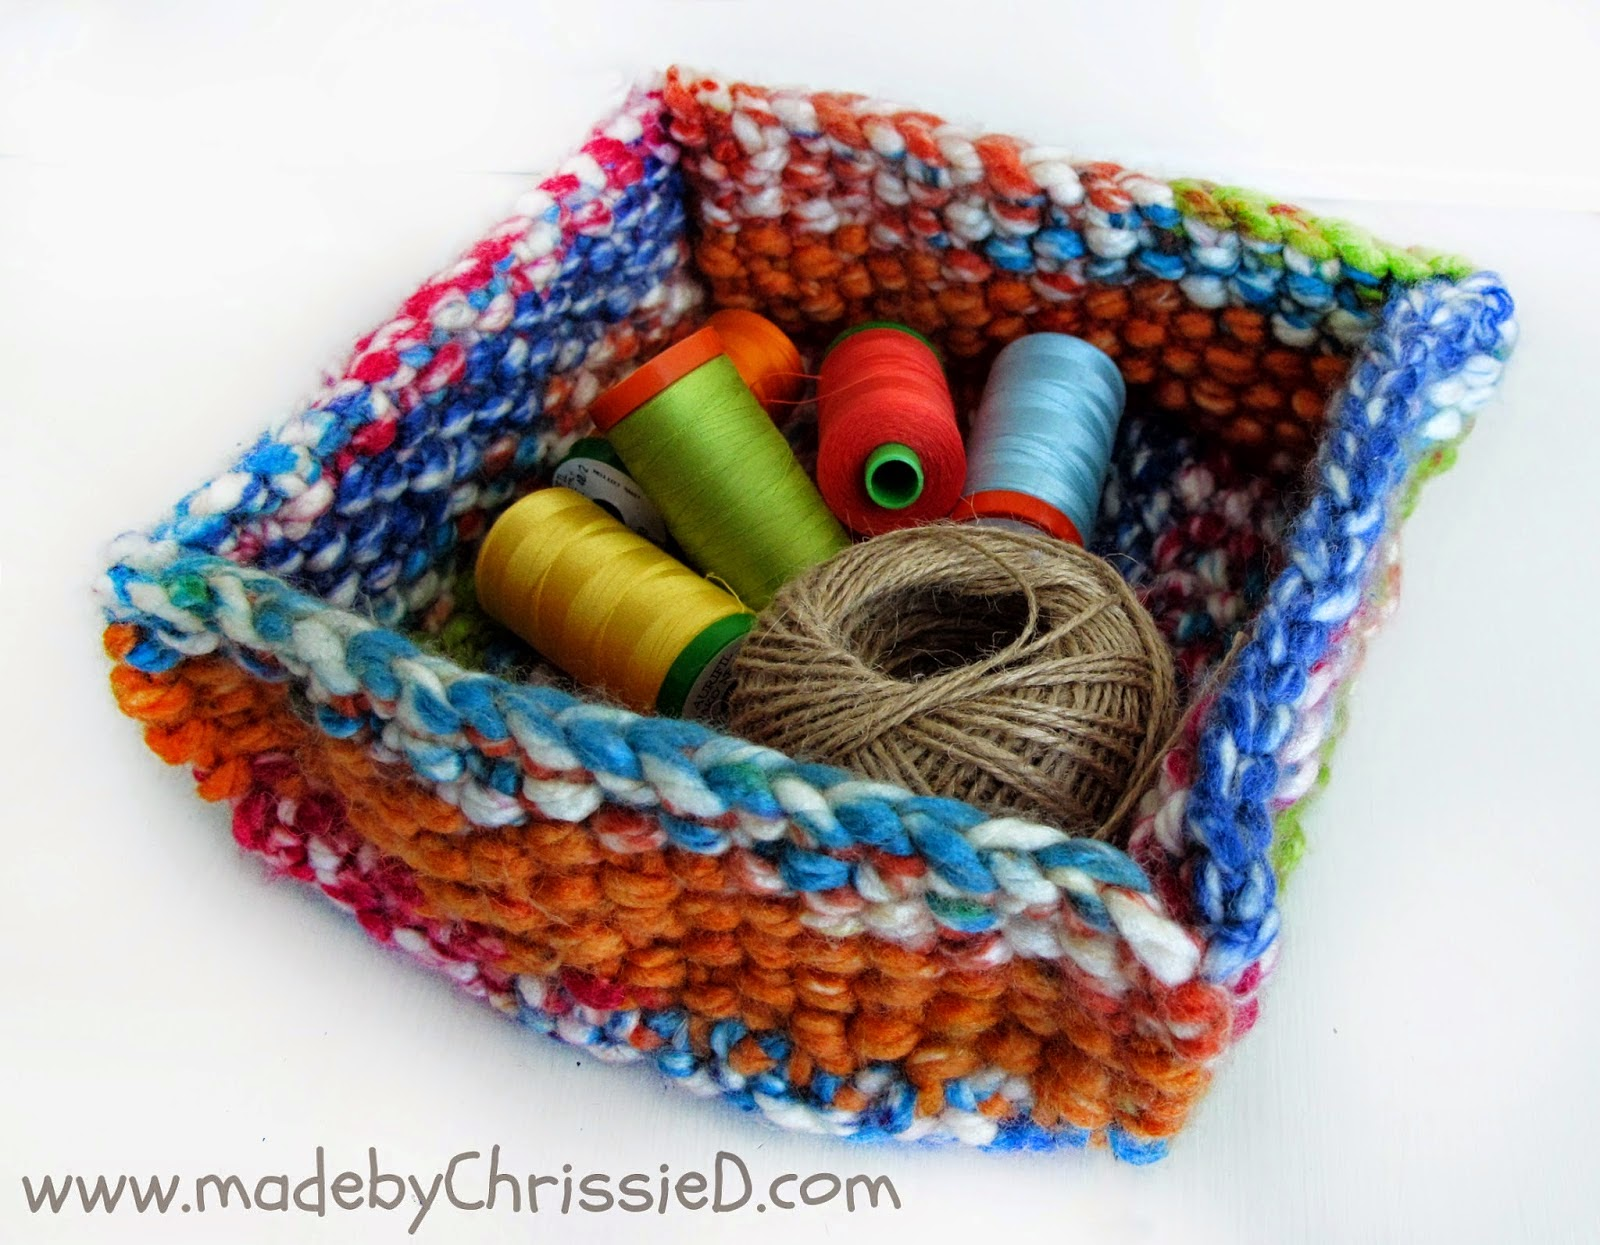 http://madebychrissied.blogspot.com/2015/03/Knitted-Tray-Tute-A-Great-Gift-Idea.html